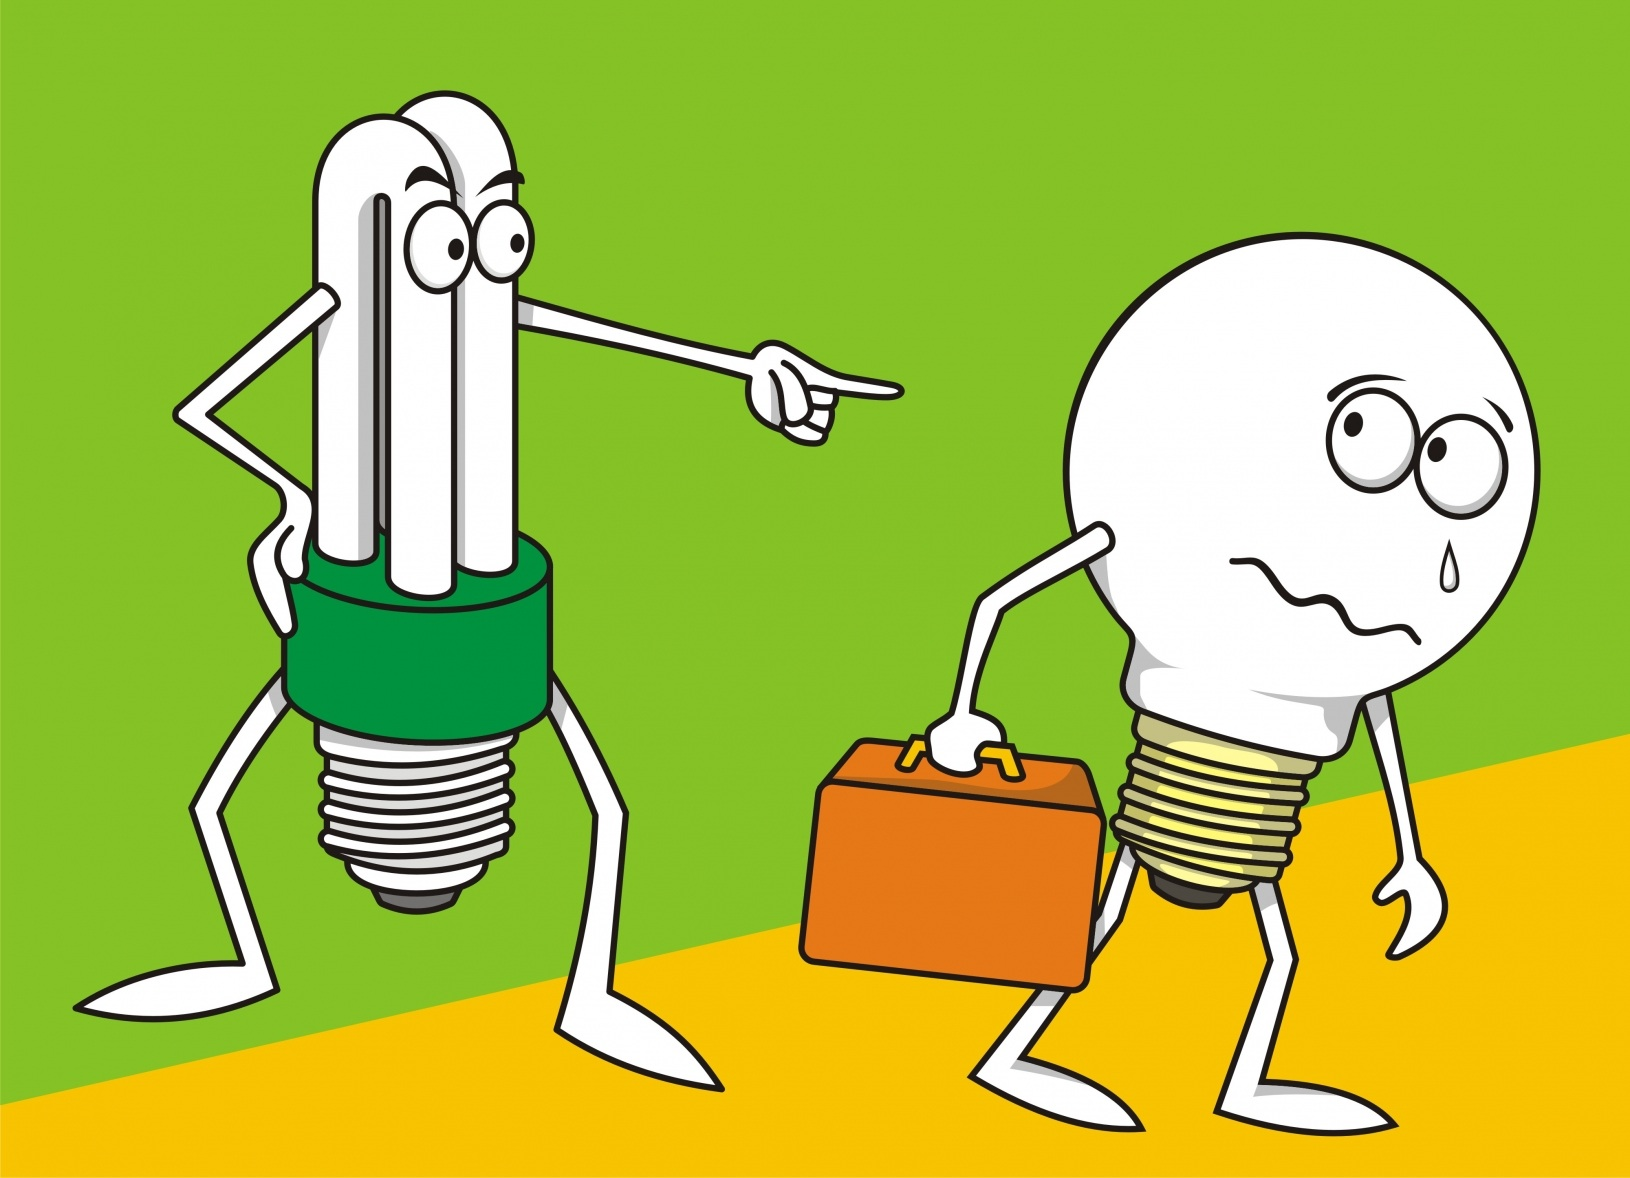 Save energy save environment clipart graphic free library Energy Saving Tips to Help Save You Money - Simon Littlegreen graphic free library